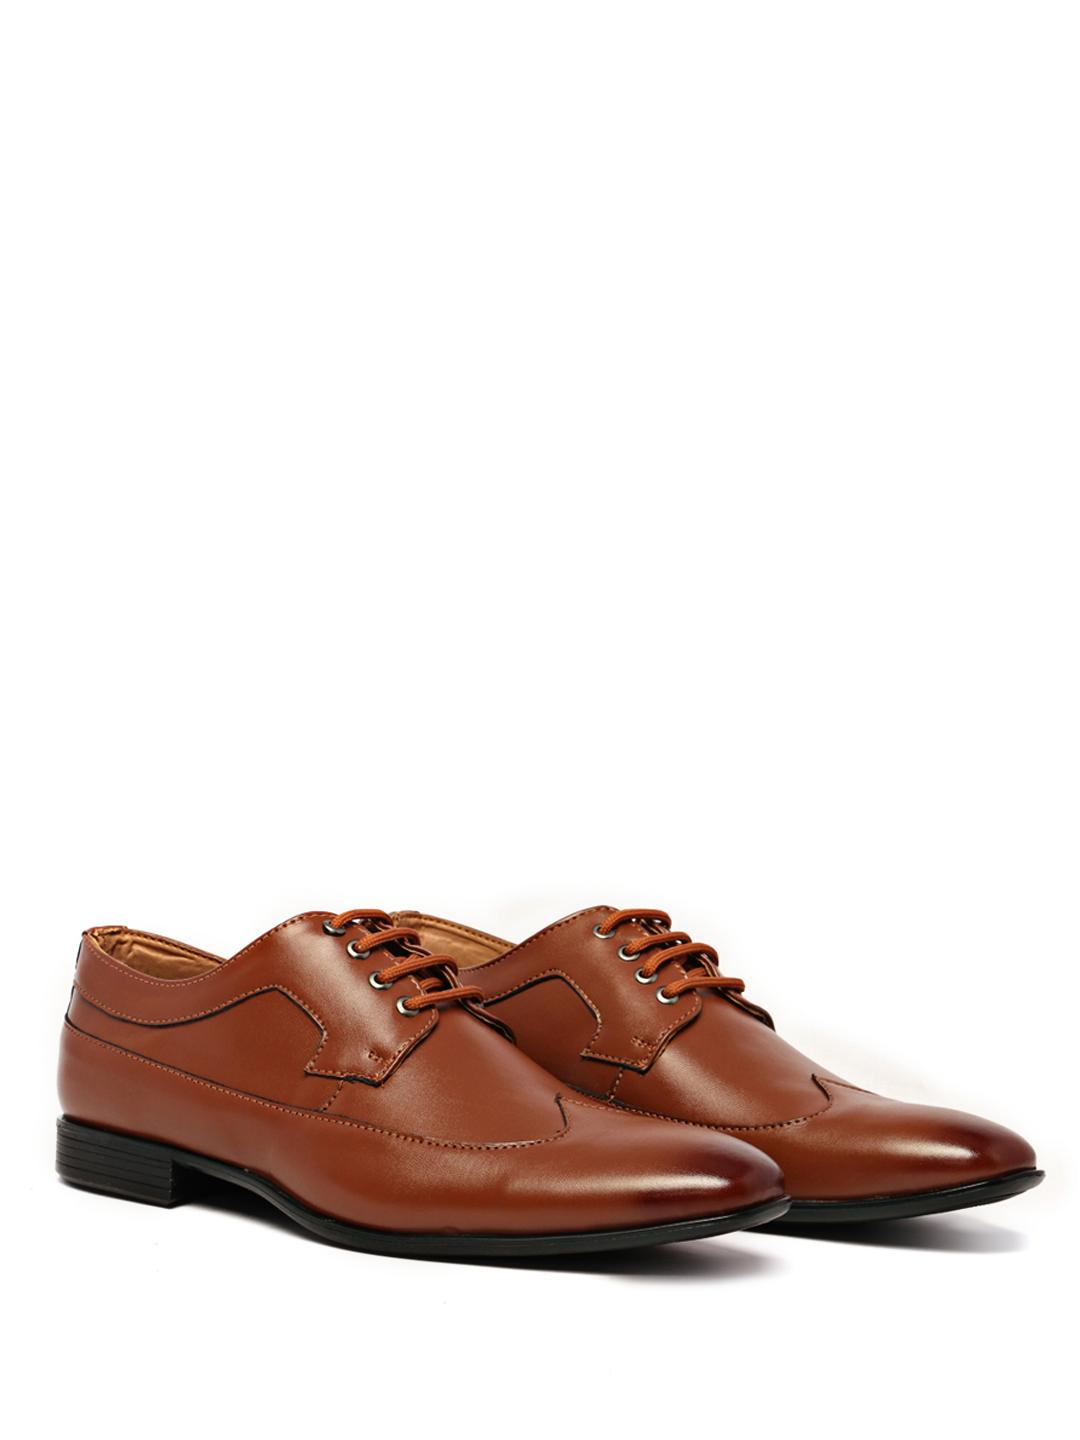 KLEAT Tan Lace Up Derby Formal Shoes 1